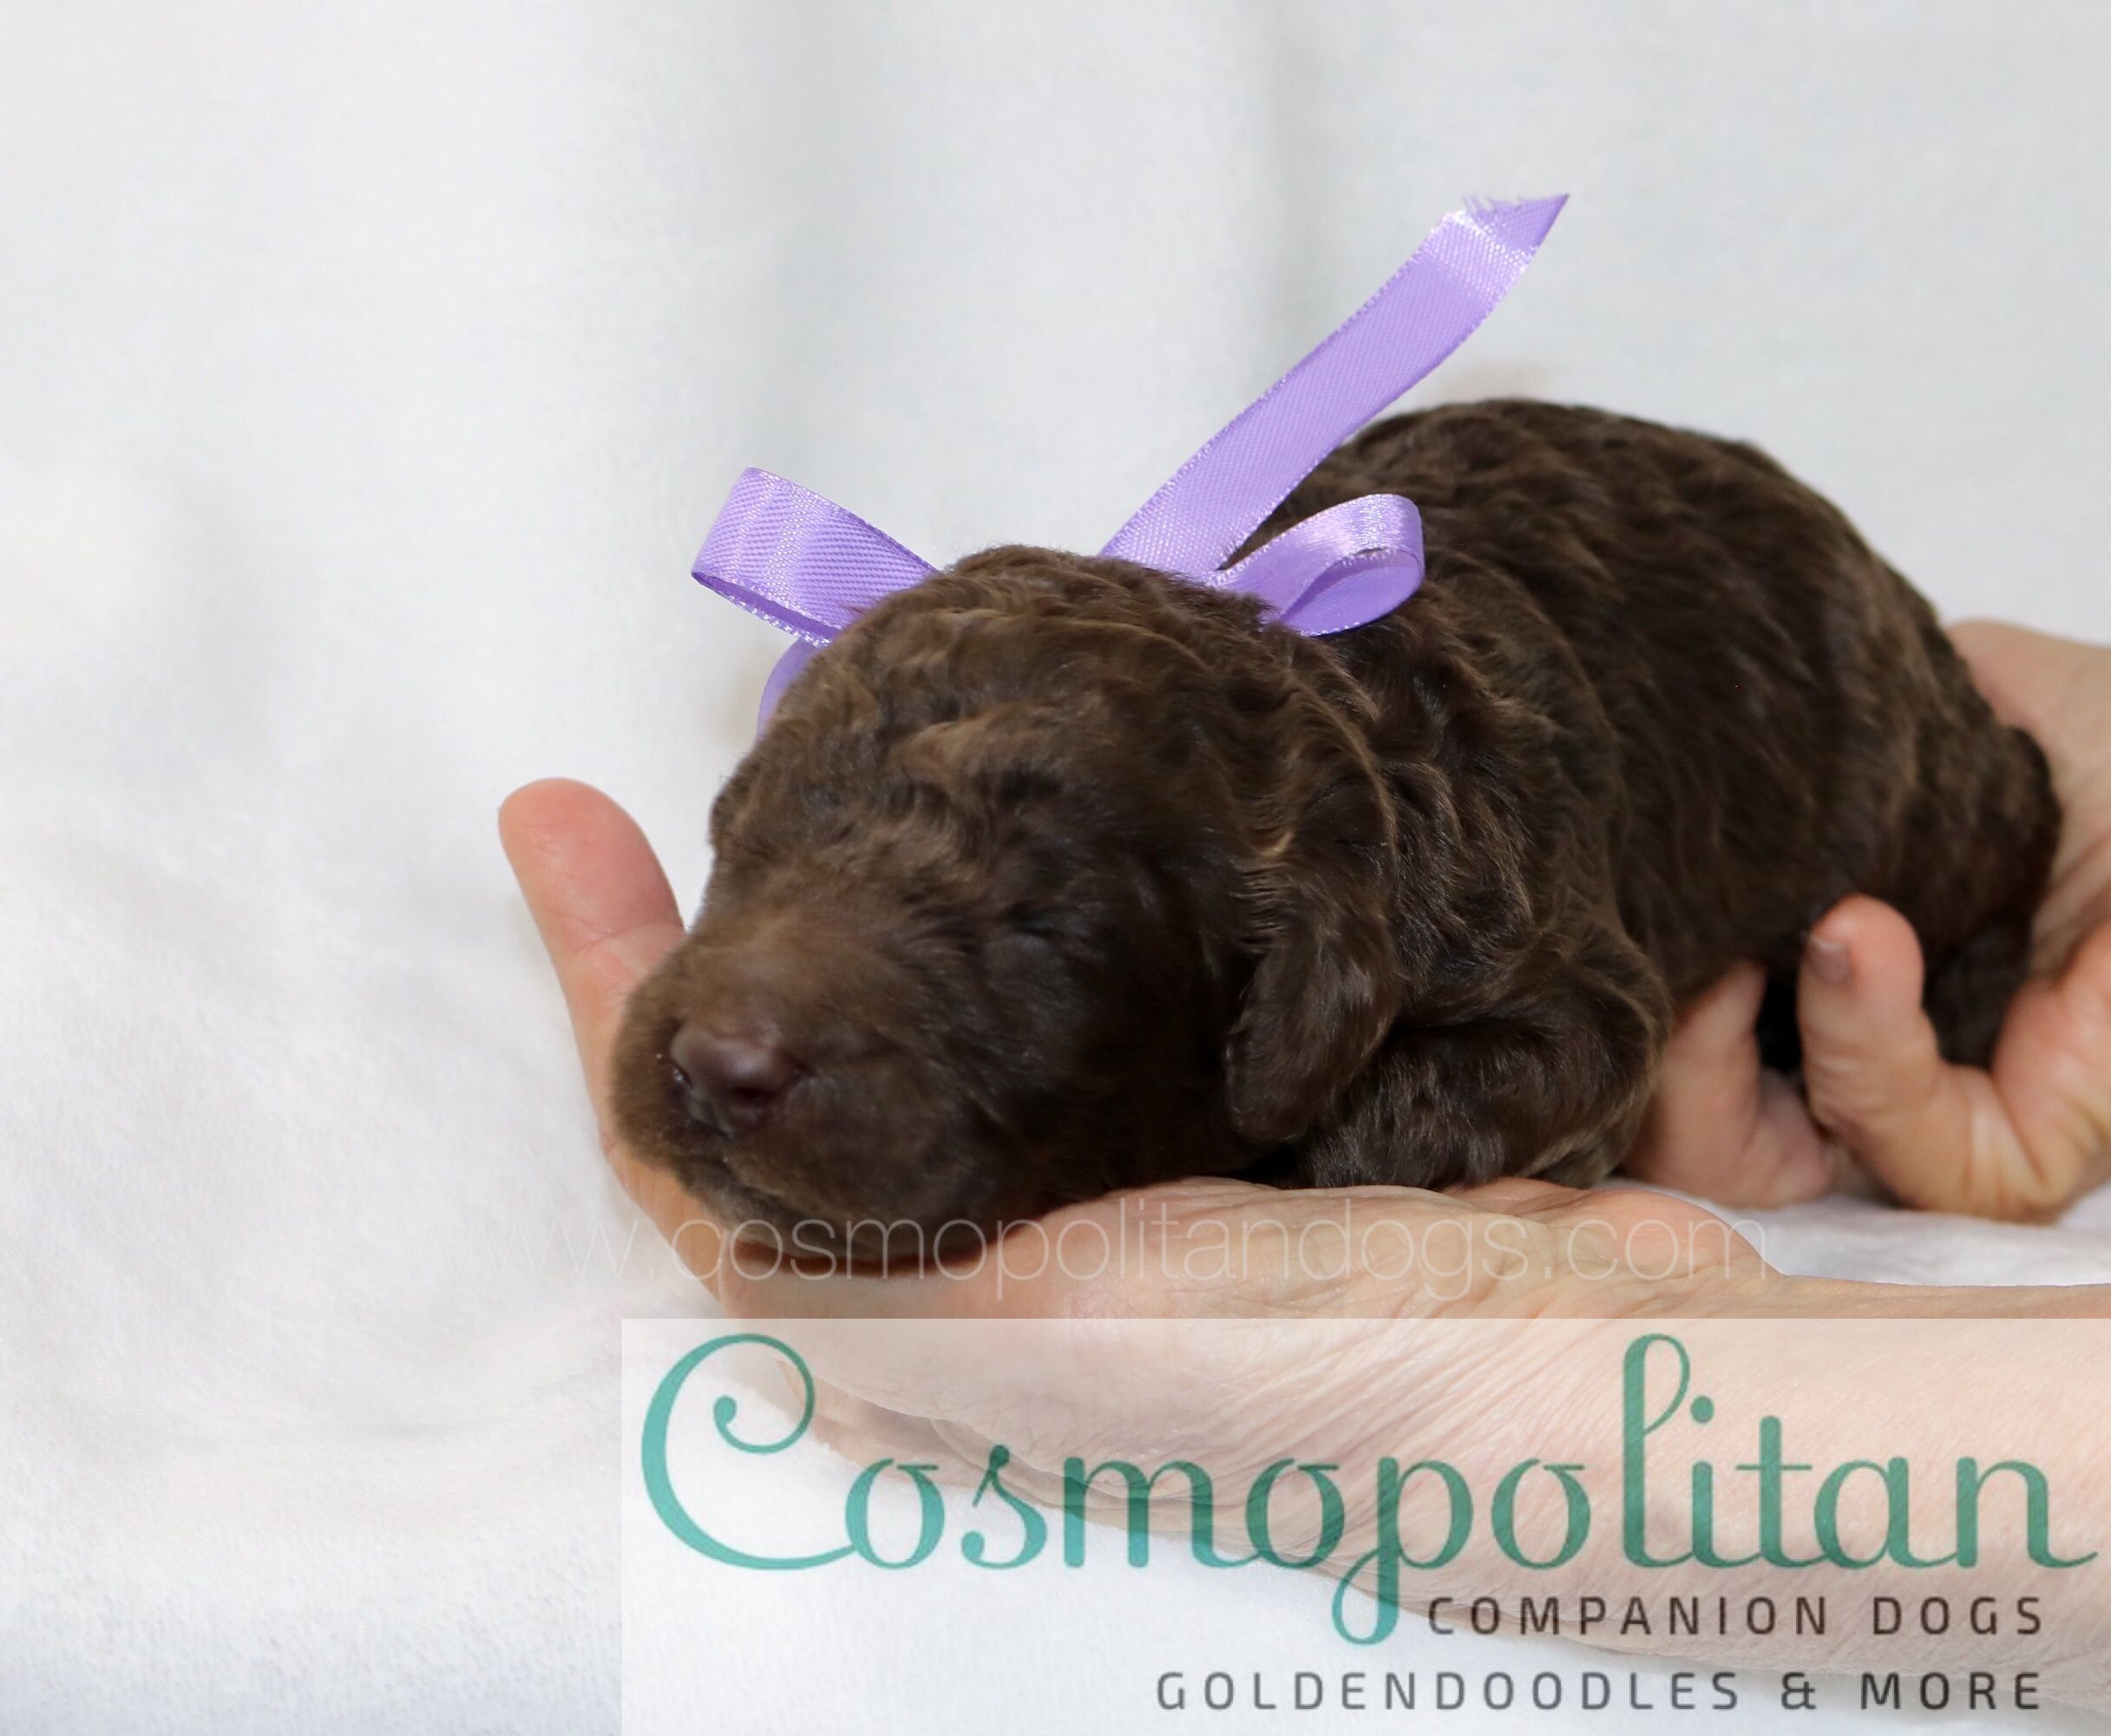 Beautiful 1week old chocolate brown Goldendoodle puppy